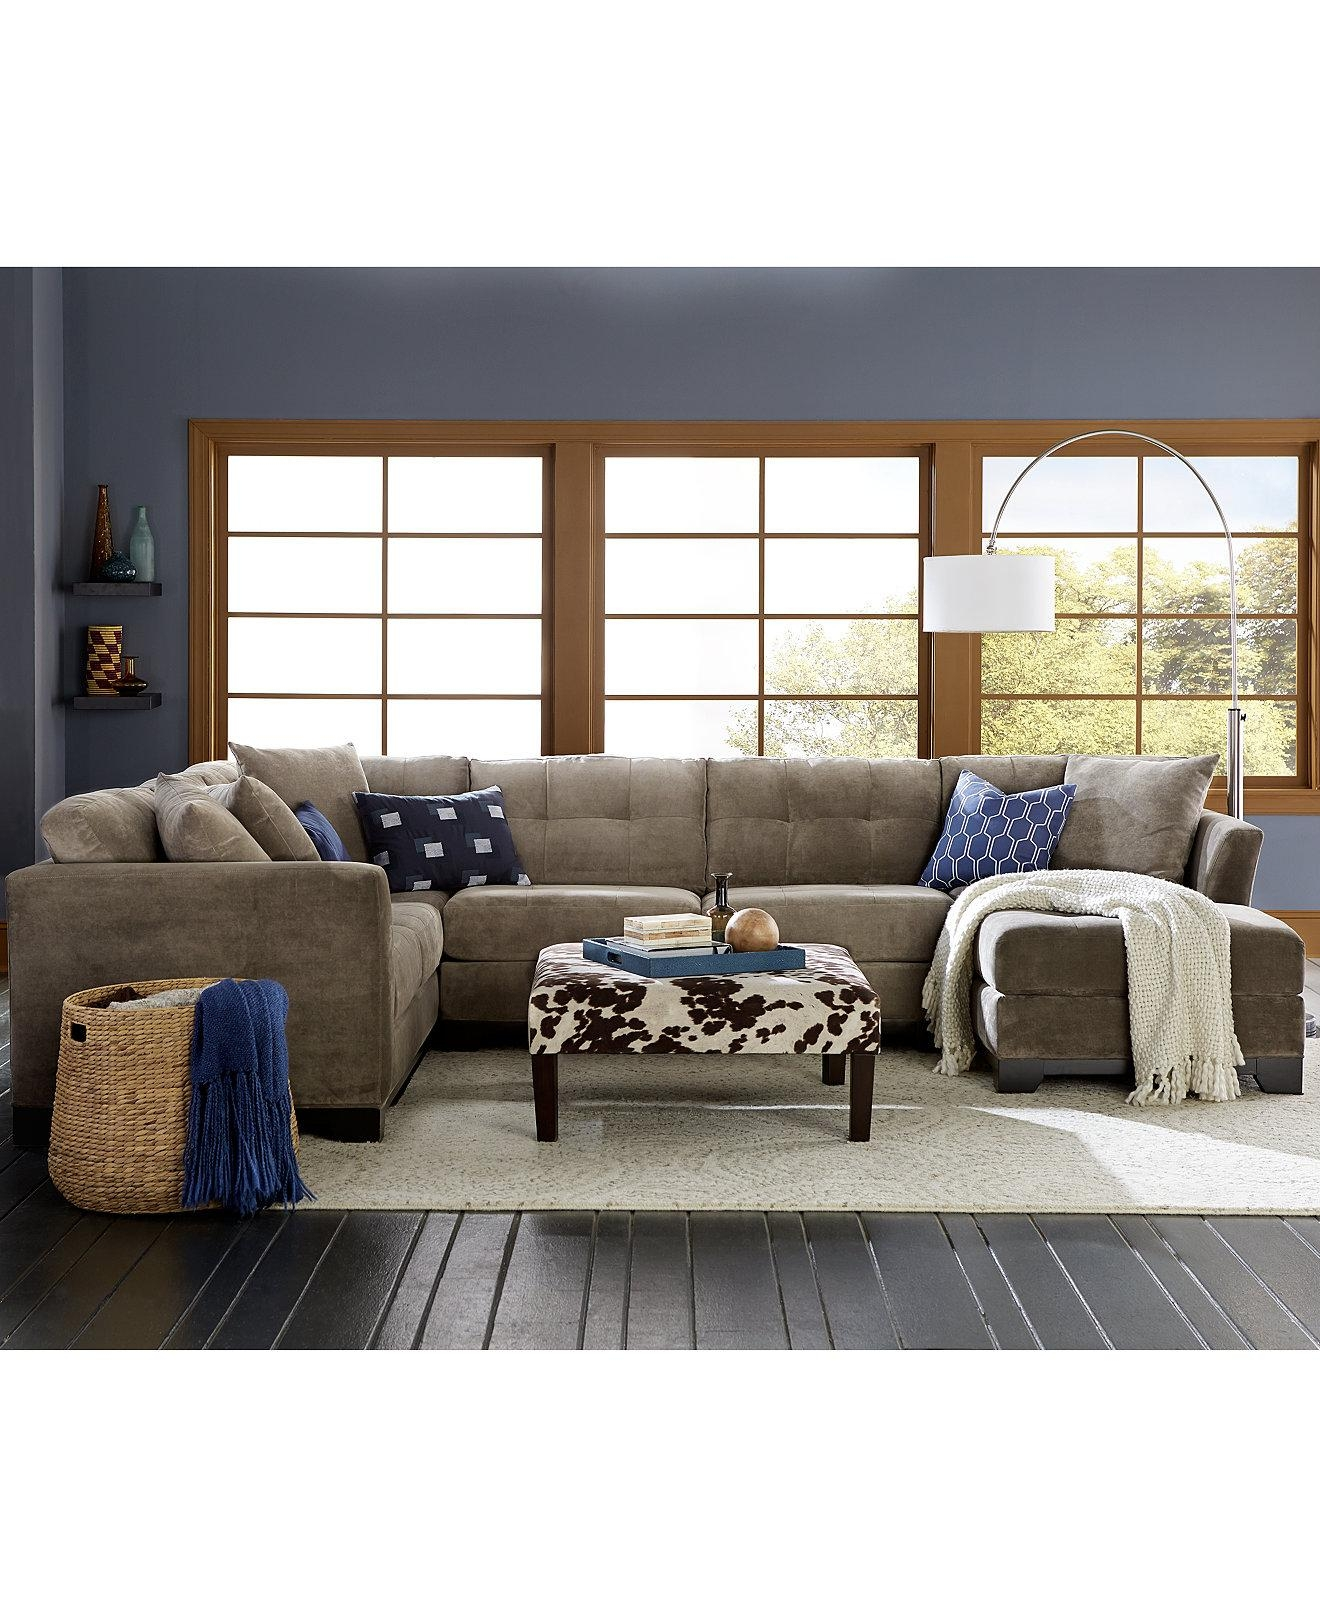 living sofas decoration com inc home modrox rochester room drury mn sectionals gallery modroxcom s furniture sectional